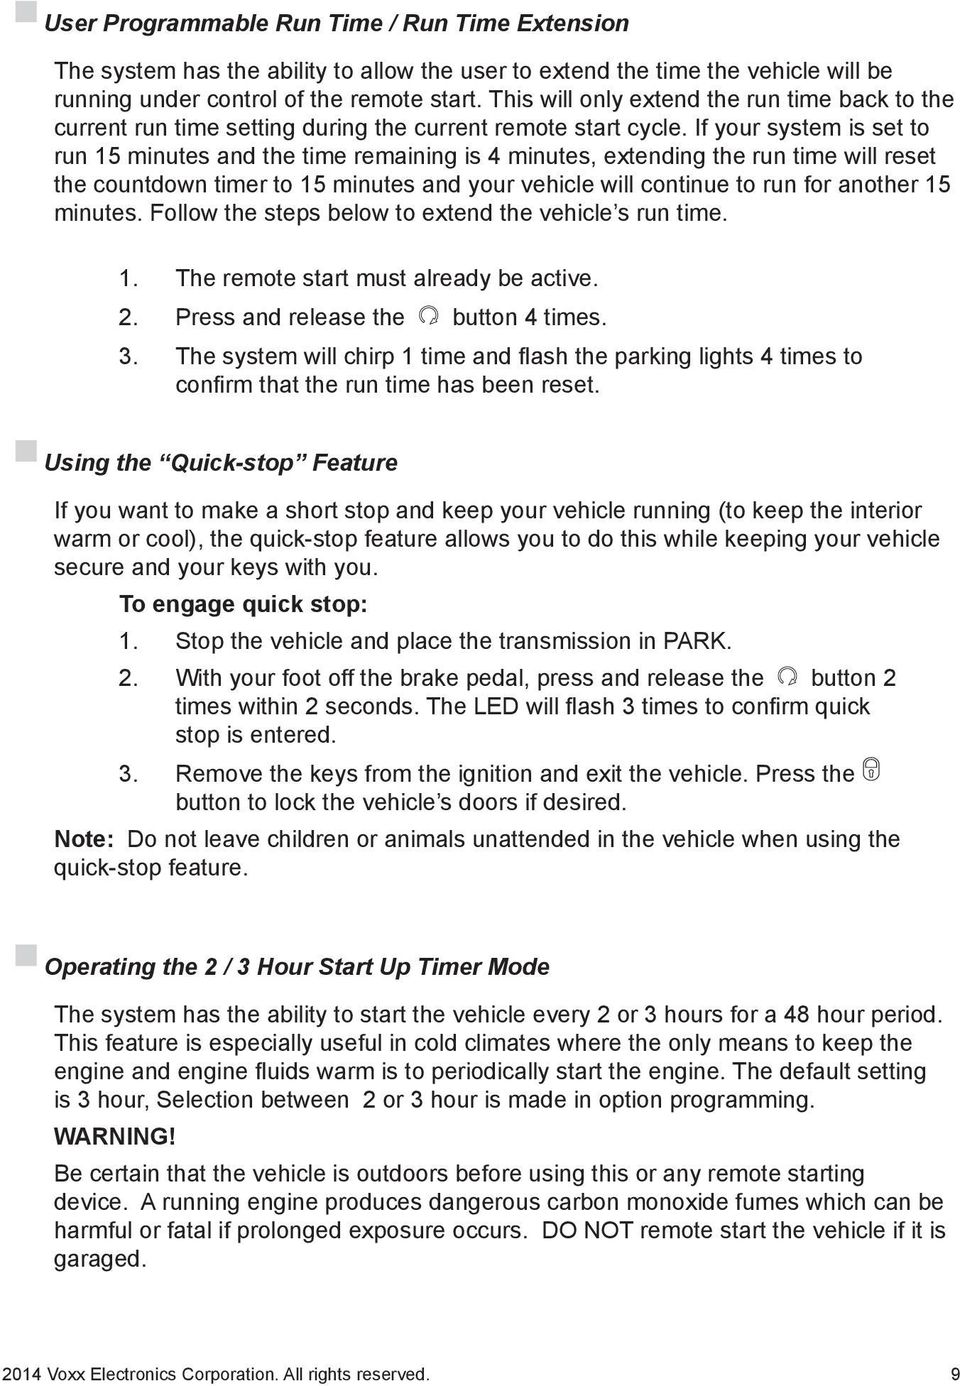 Owner S Guide Ca Pdf Three Hour Timer If Your System Is Set To Run 15 Minutes And The Time Remaining 4